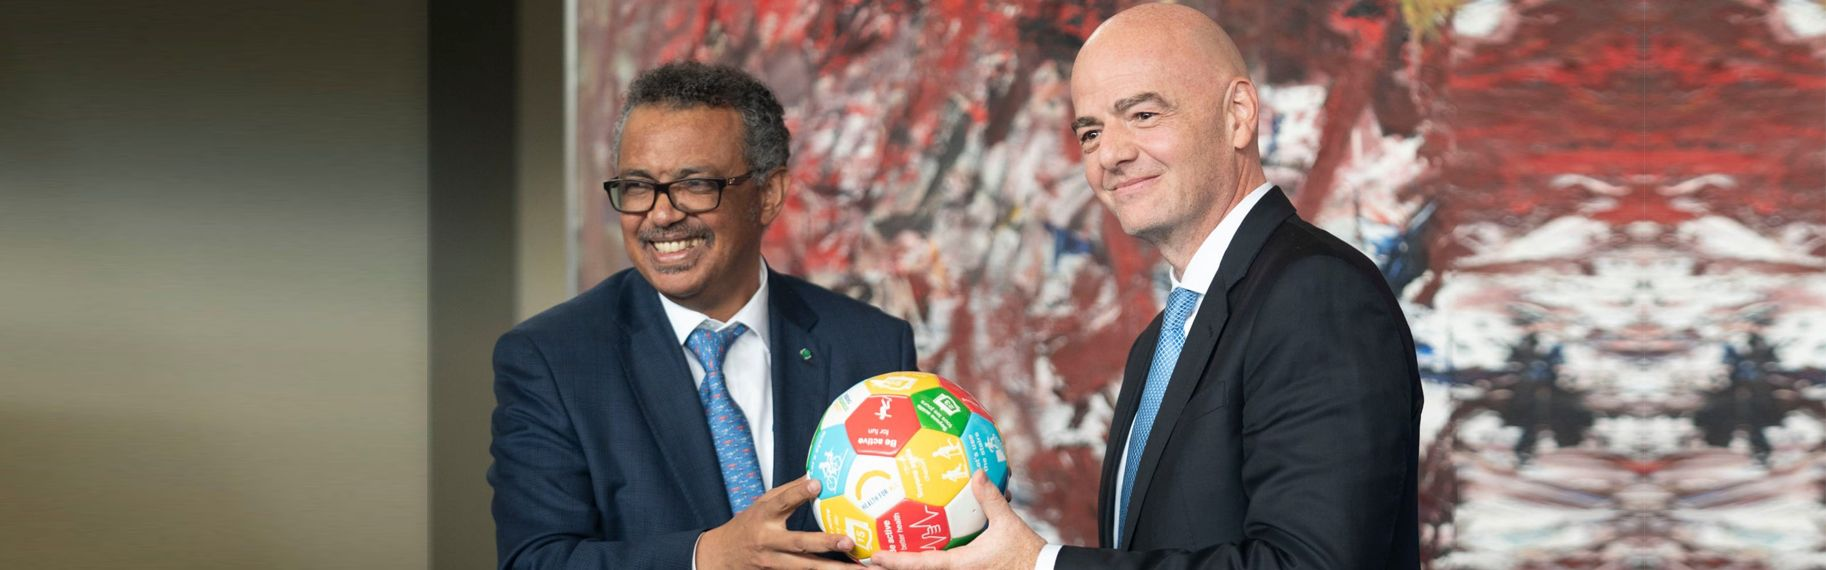 FIFA_ACTtogethercampaign_WorldCup2021_cabecera.jpg